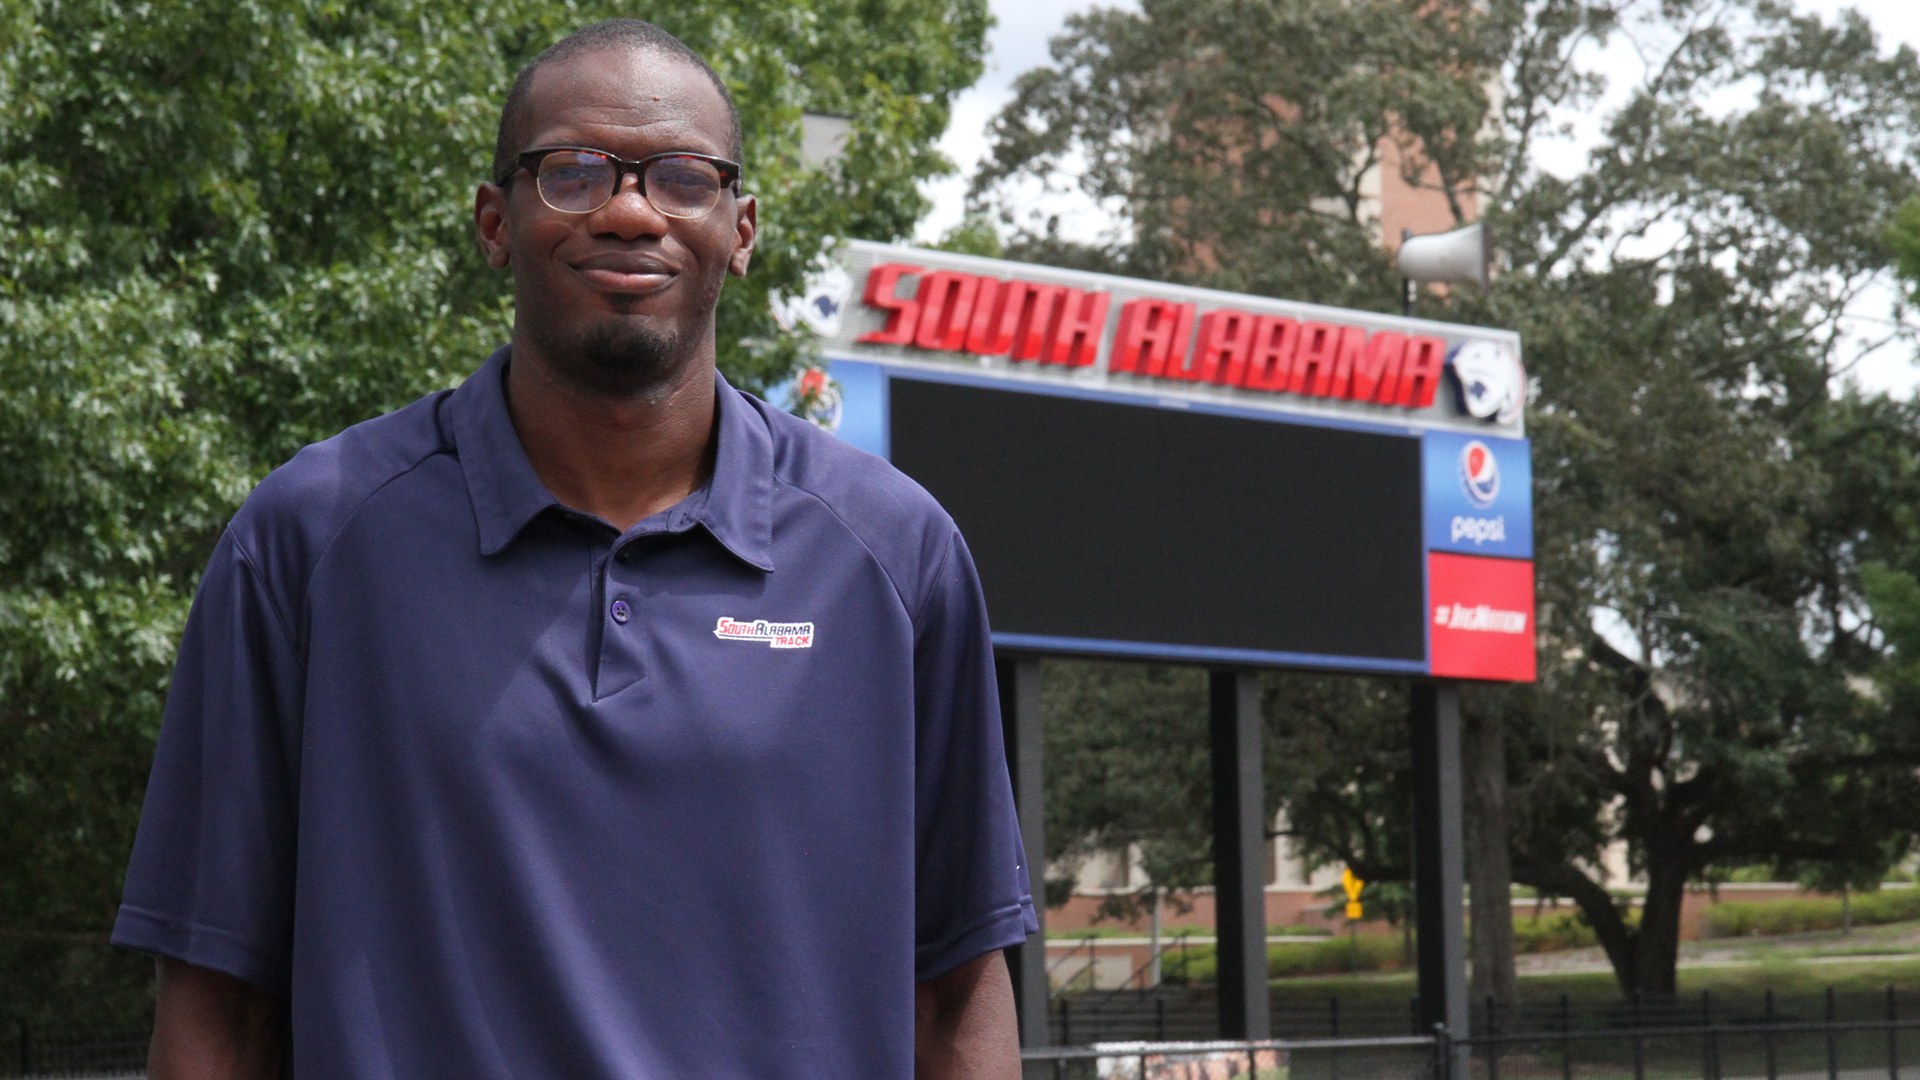 Michael Cooley has been named to the University of South Alabama's track and field staff.